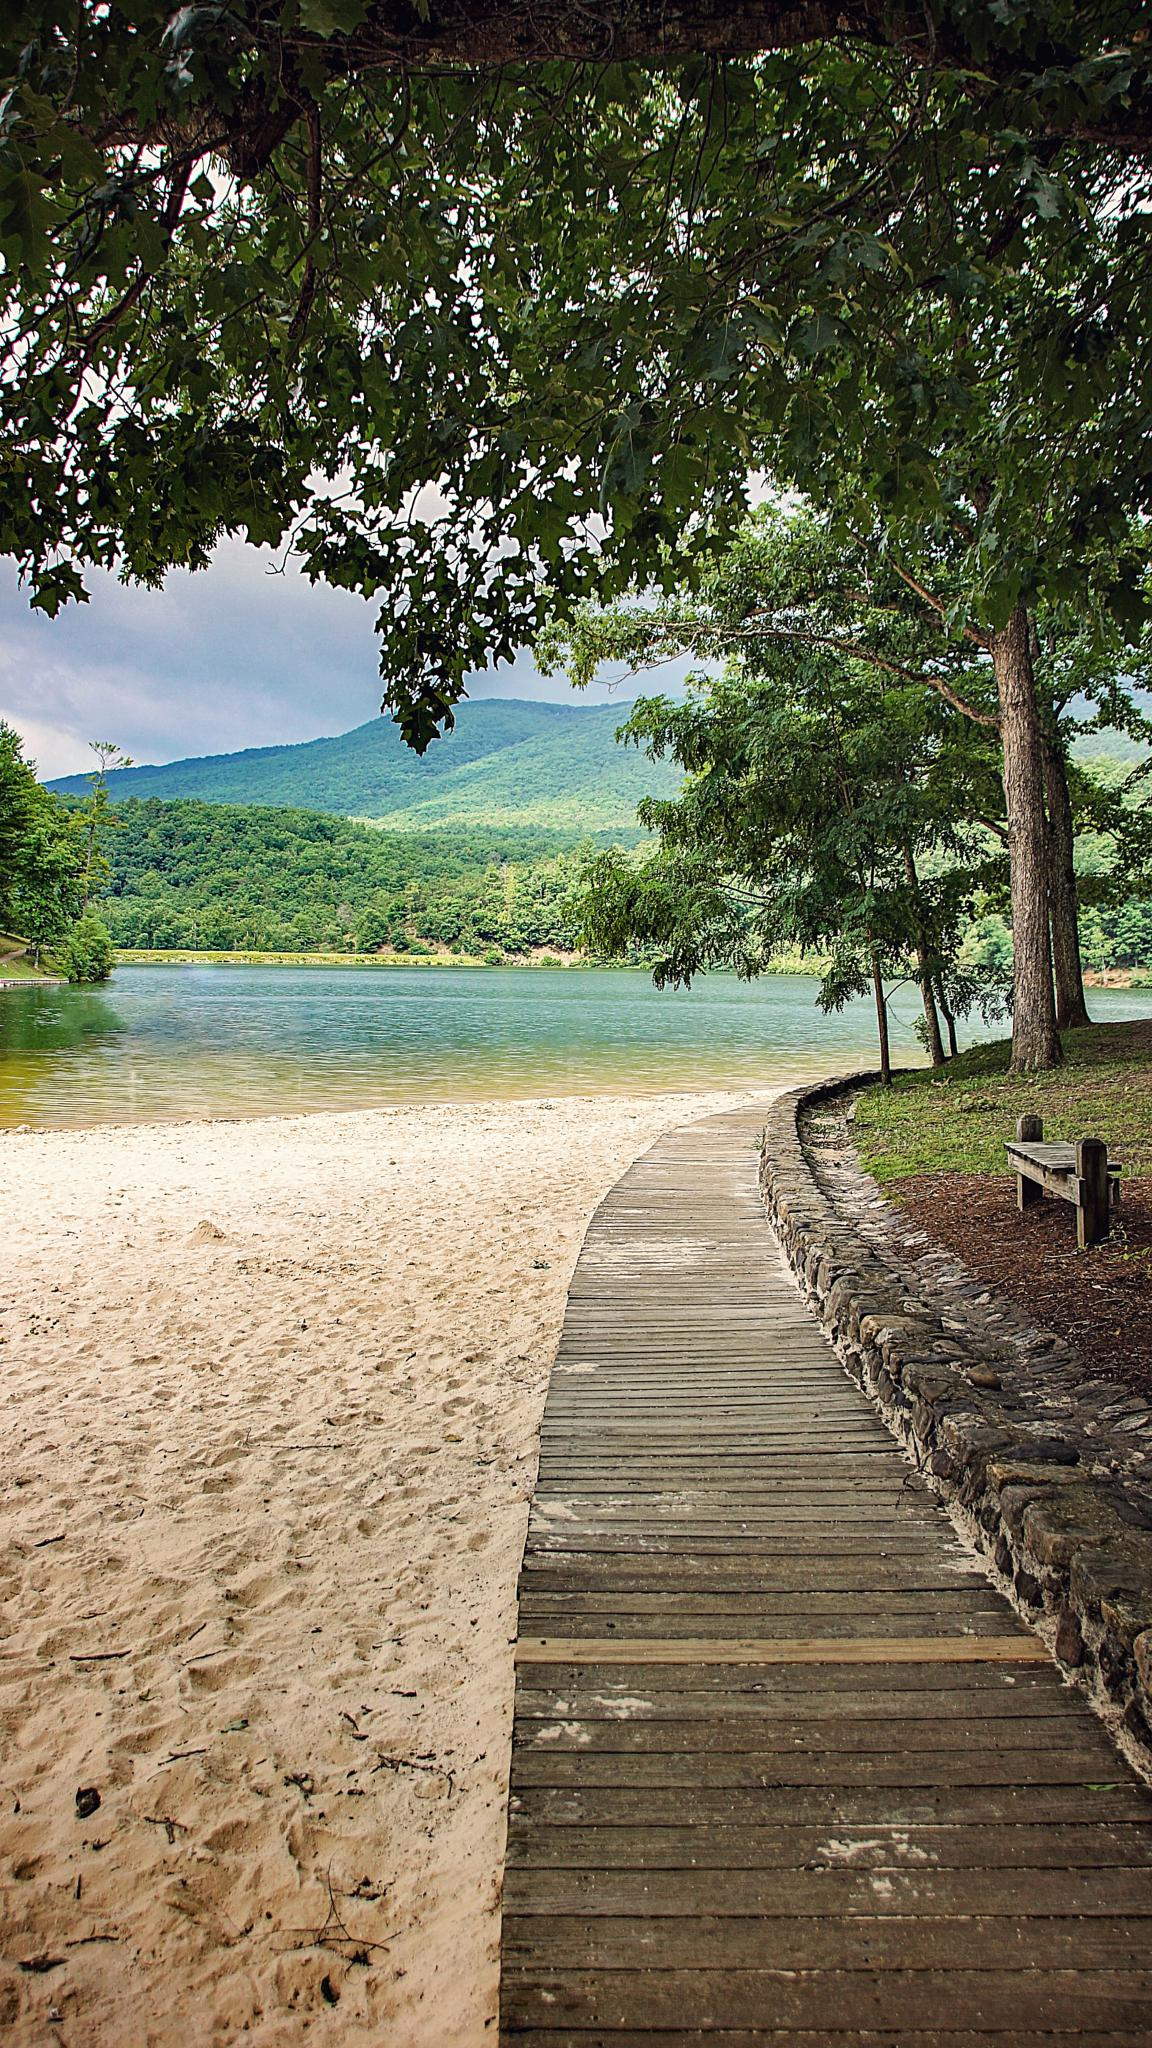 Douthat State Park by Mary Wolfe